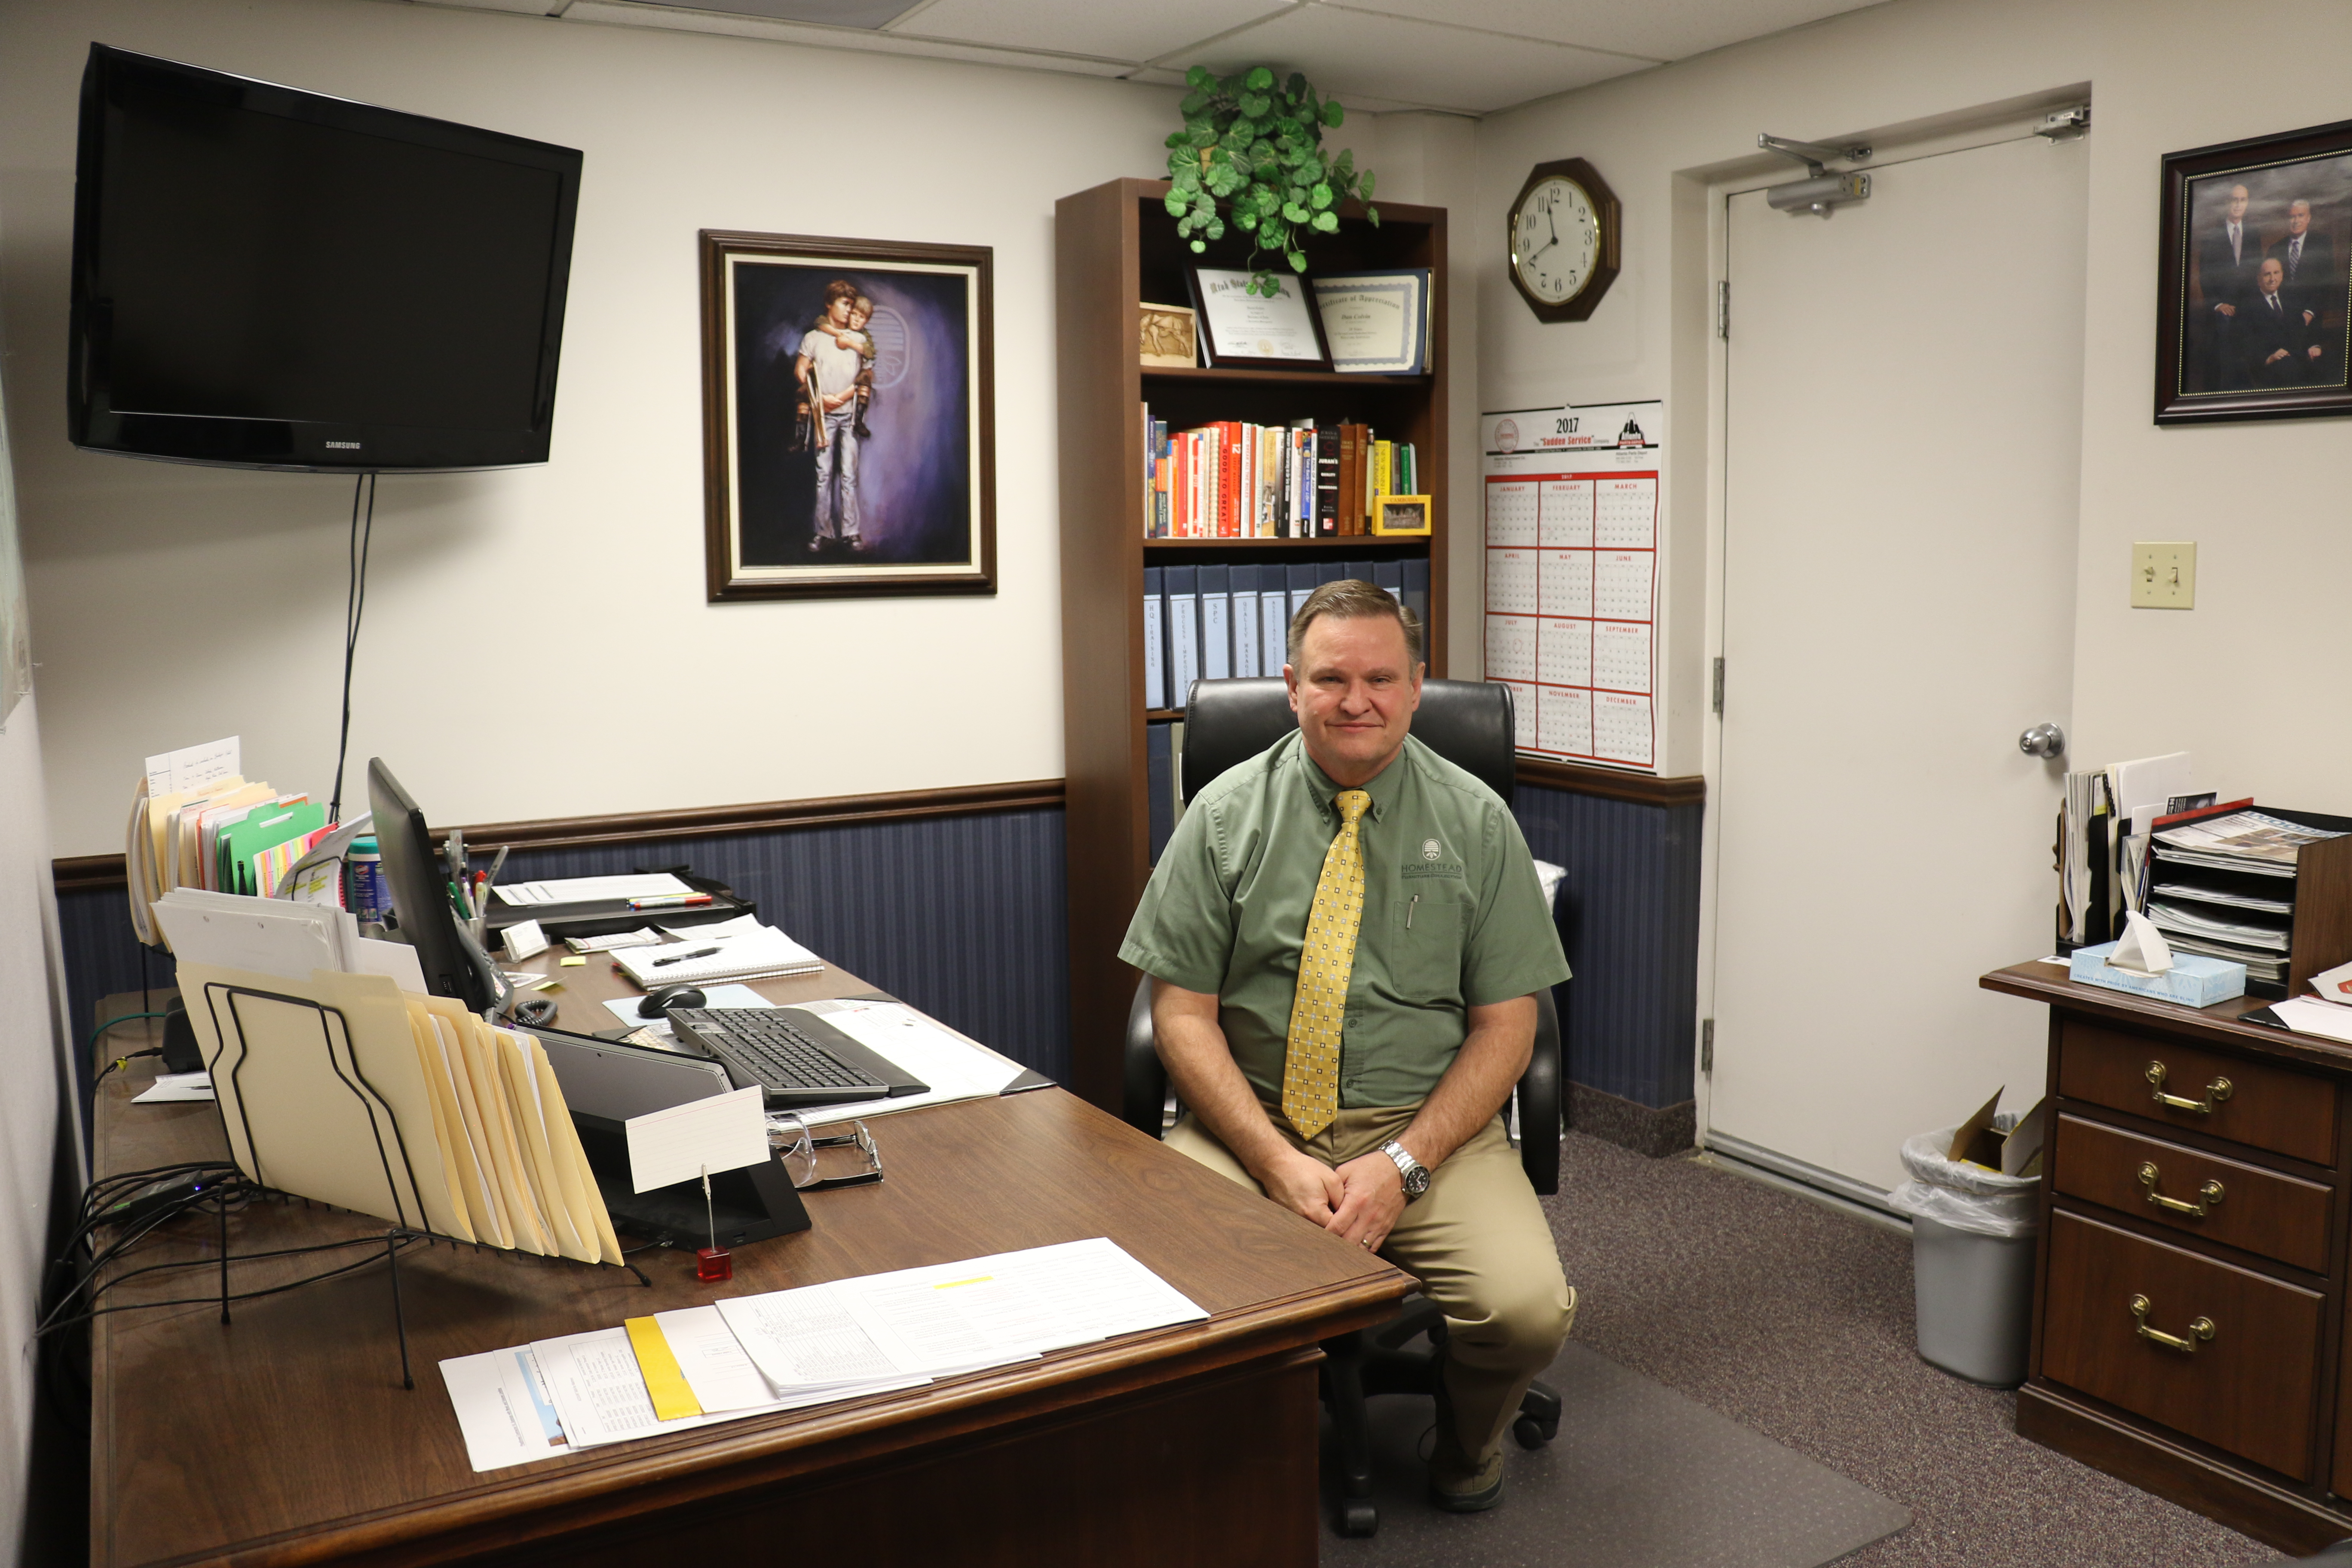 Dan Colvin, Welfare processing facility manager, sits in his office in the Deseret Manufacturing facility in Salt Lake City, Utah.